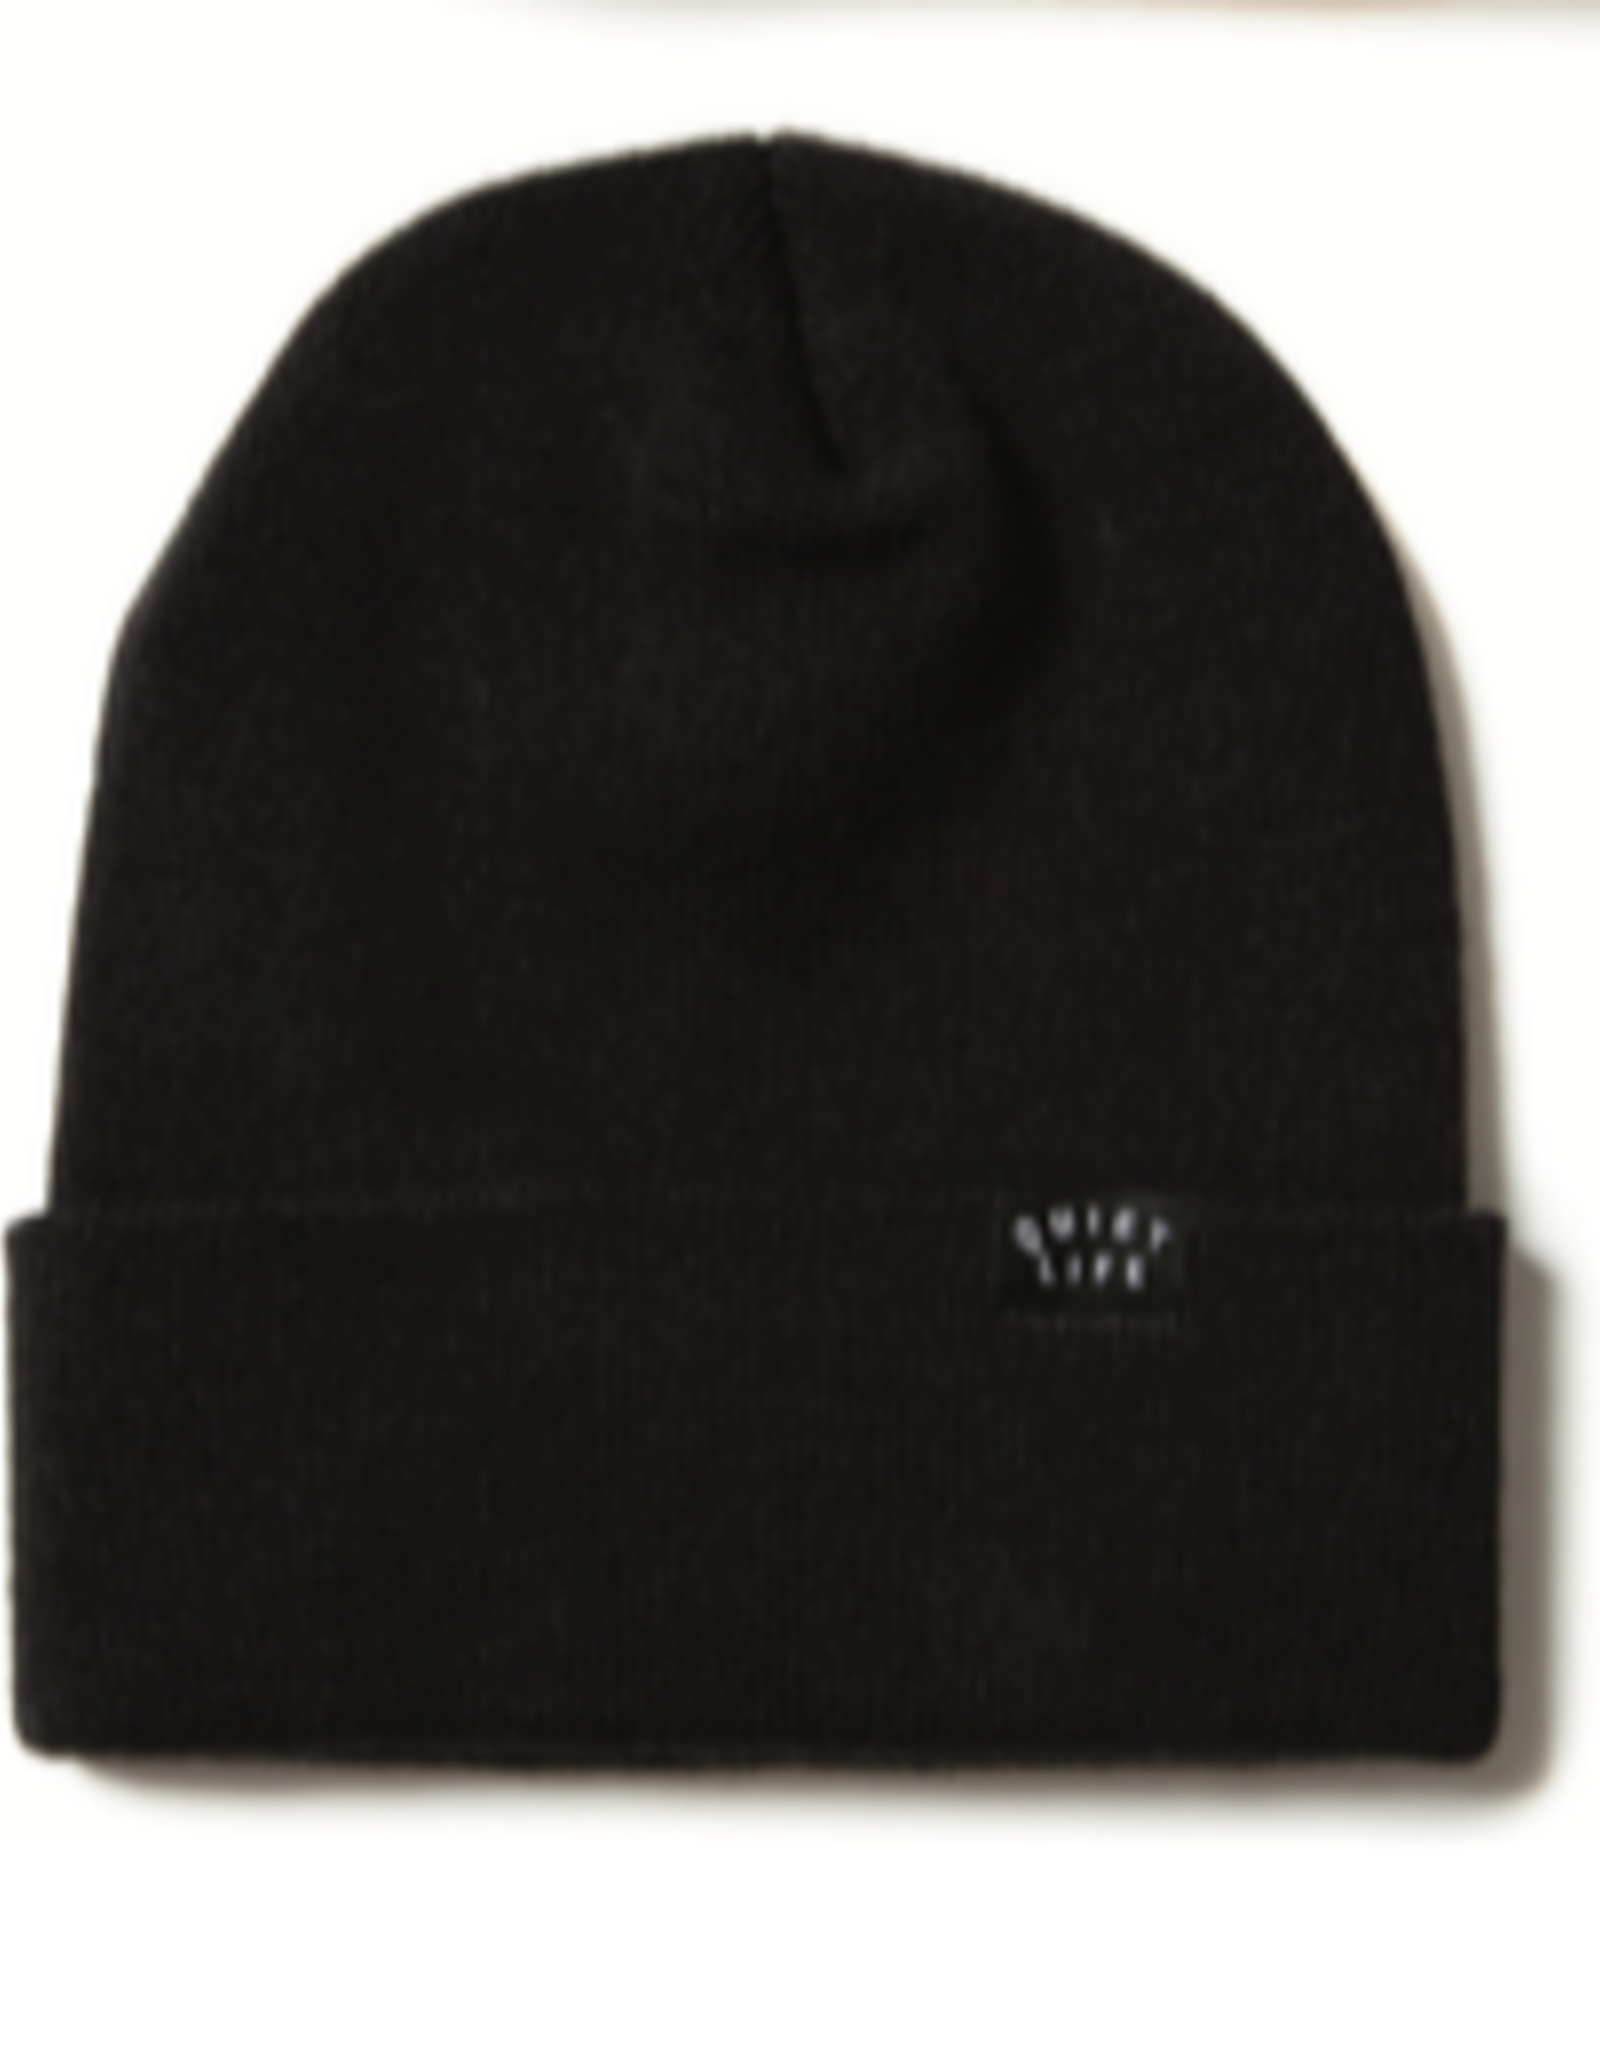 THE QUIET LIFE THE QUIET LIFE STANDARD BEANIE BLACK SPECKLE